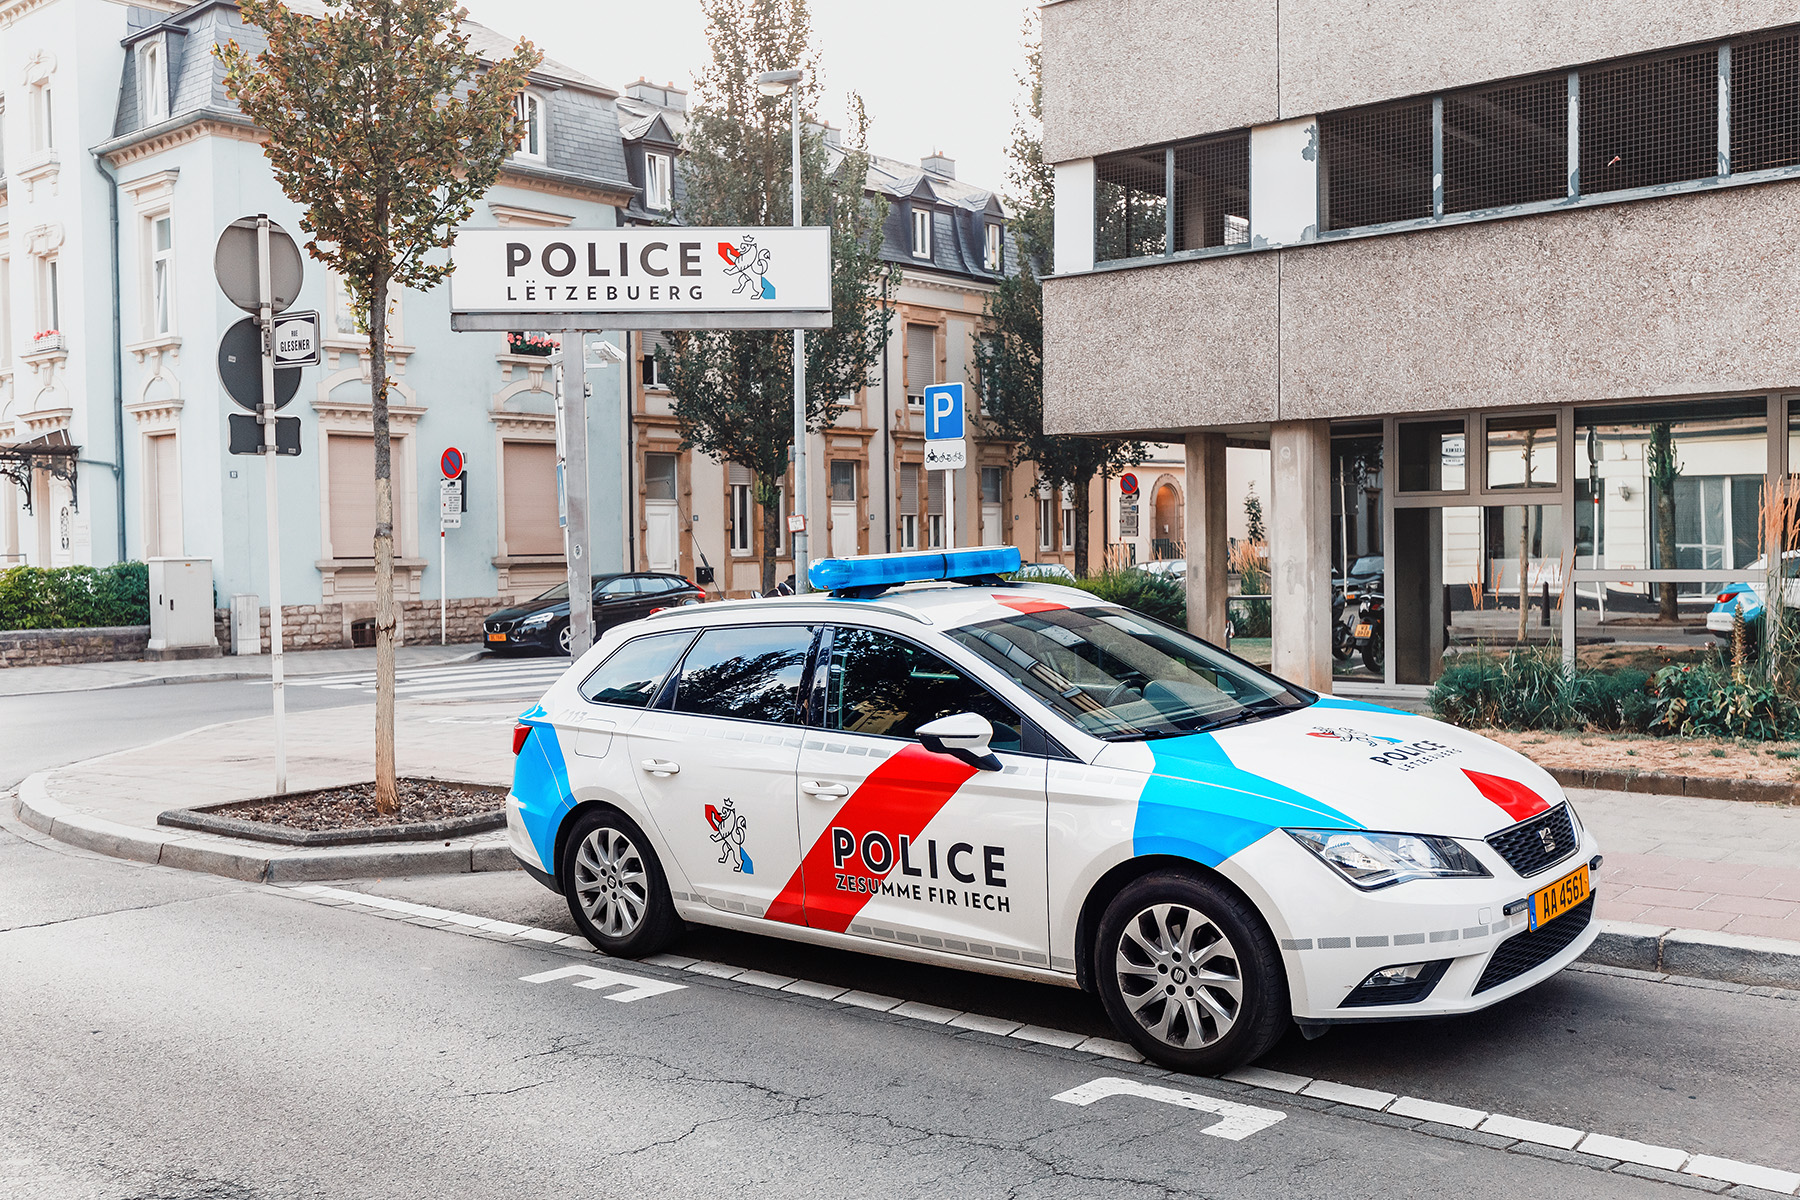 Police station in Luxembourg